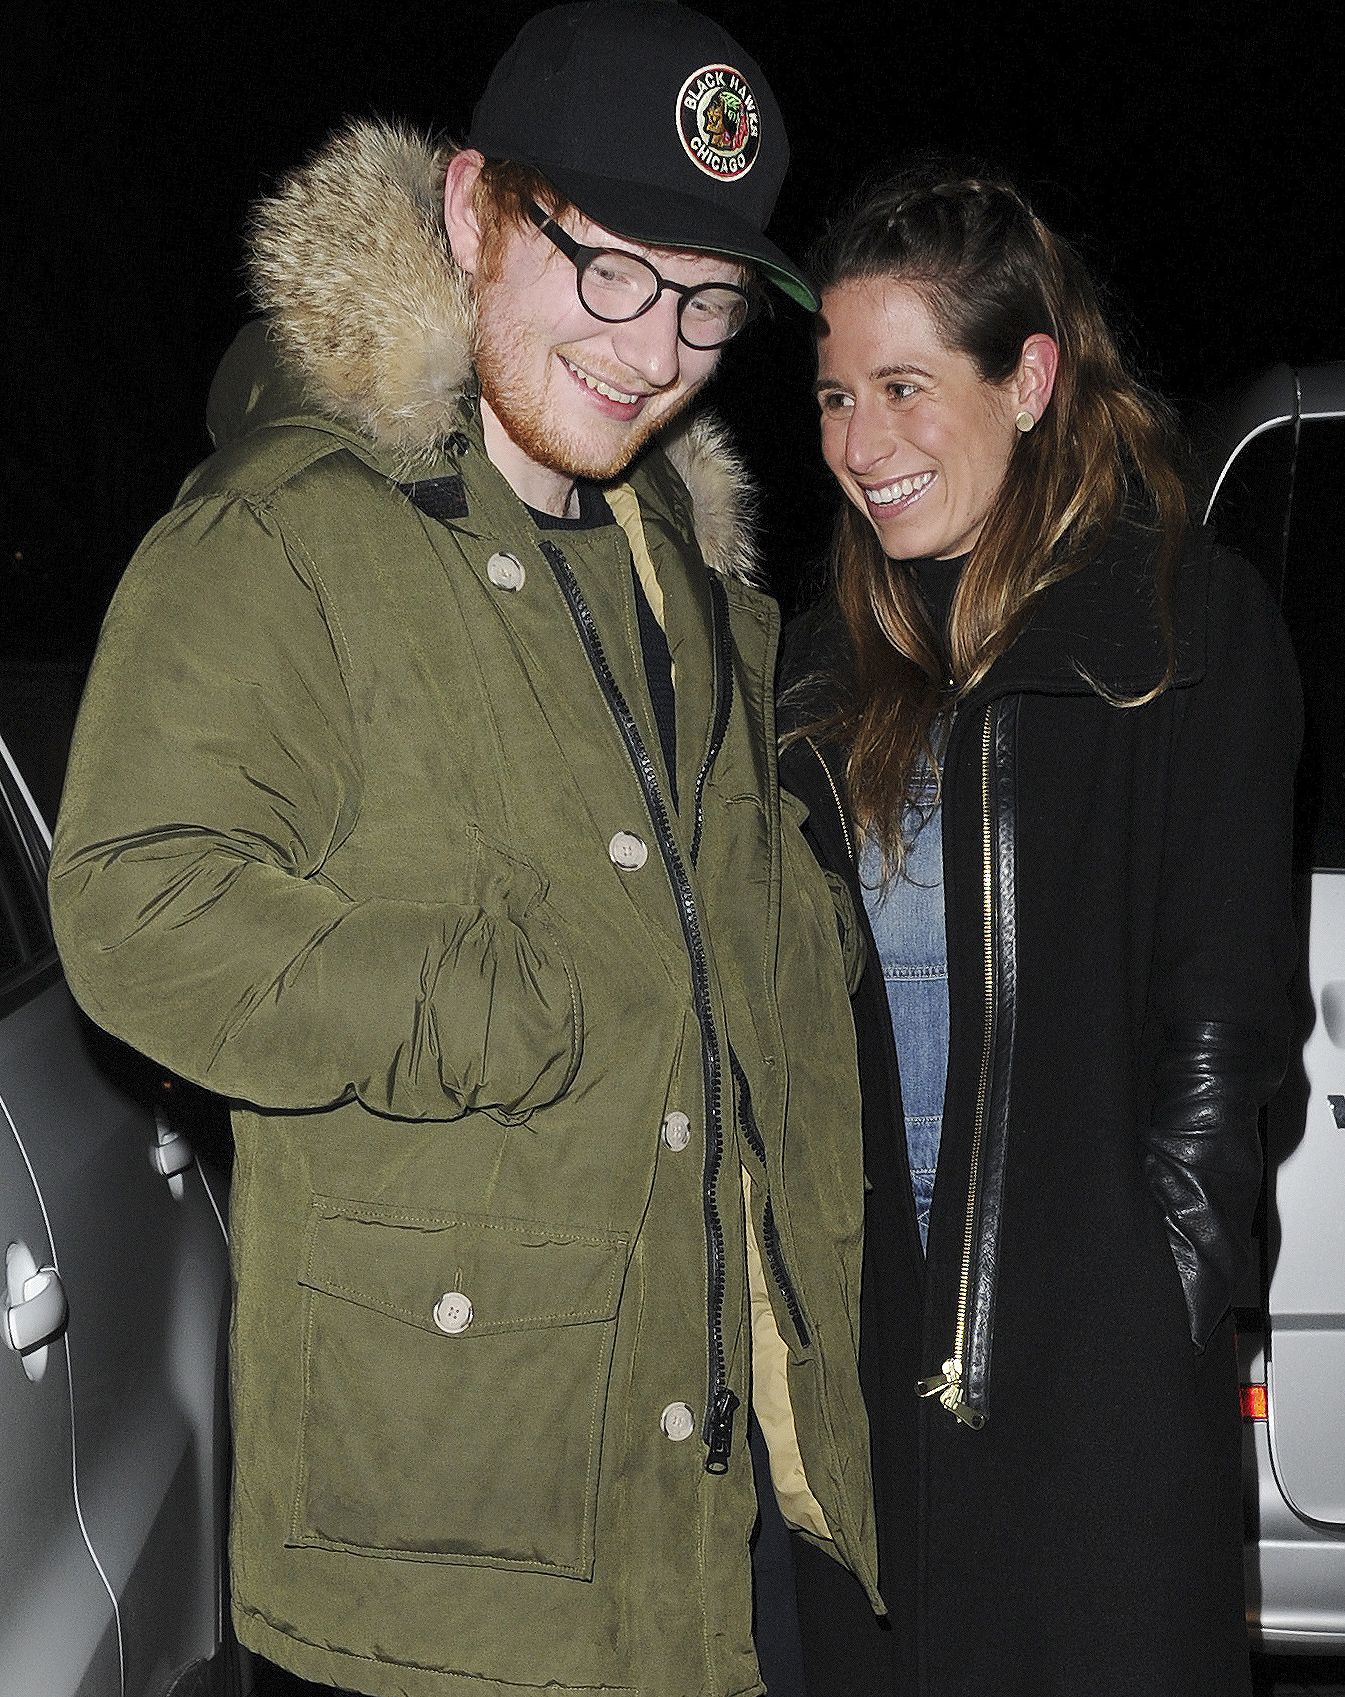 Ed Sheeran And Cherry Seaborn Are Engaged We Are Very Happy And In Love Ed Sheeran Cherry Ed Sheeran Is Ed Sheeran Married